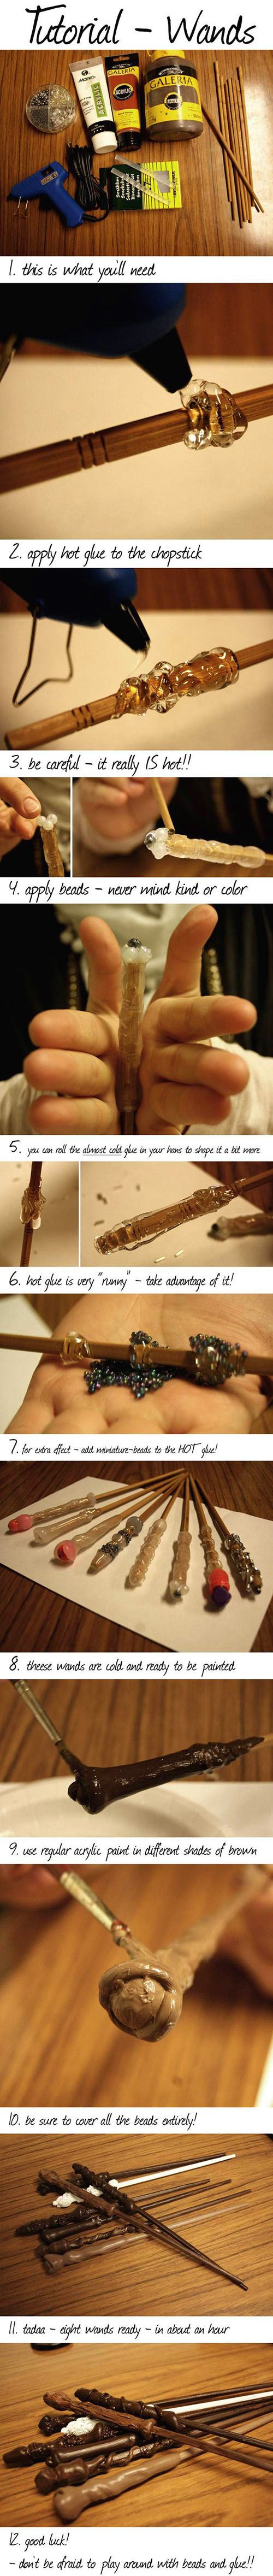 DIY Magic Wand.